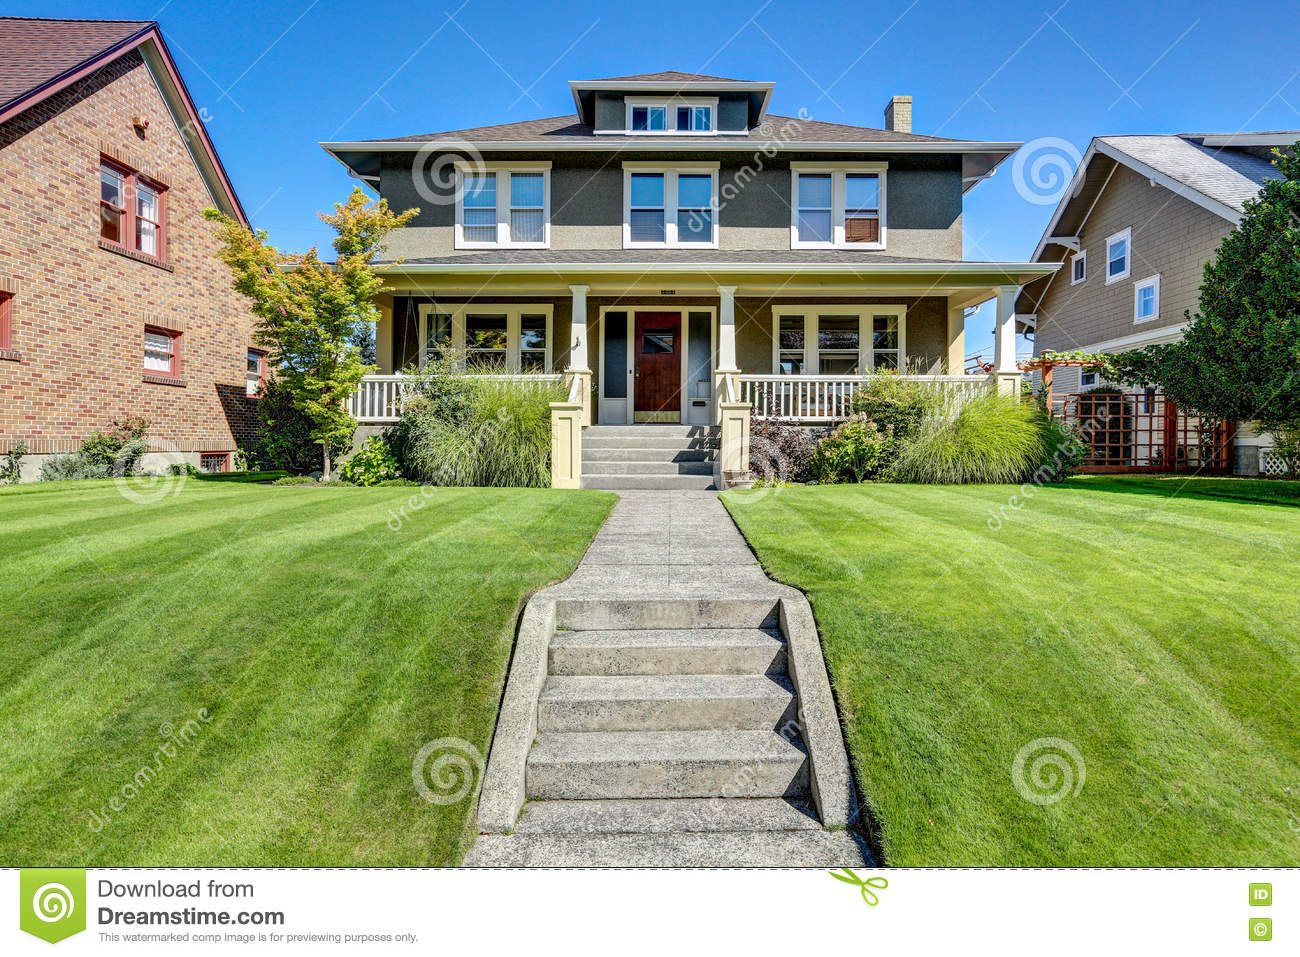 Covered front porch craftsman style home royalty free stock image - Royalty Free Stock Photo American Appeal Craftsman Curb Front House Northwest Style